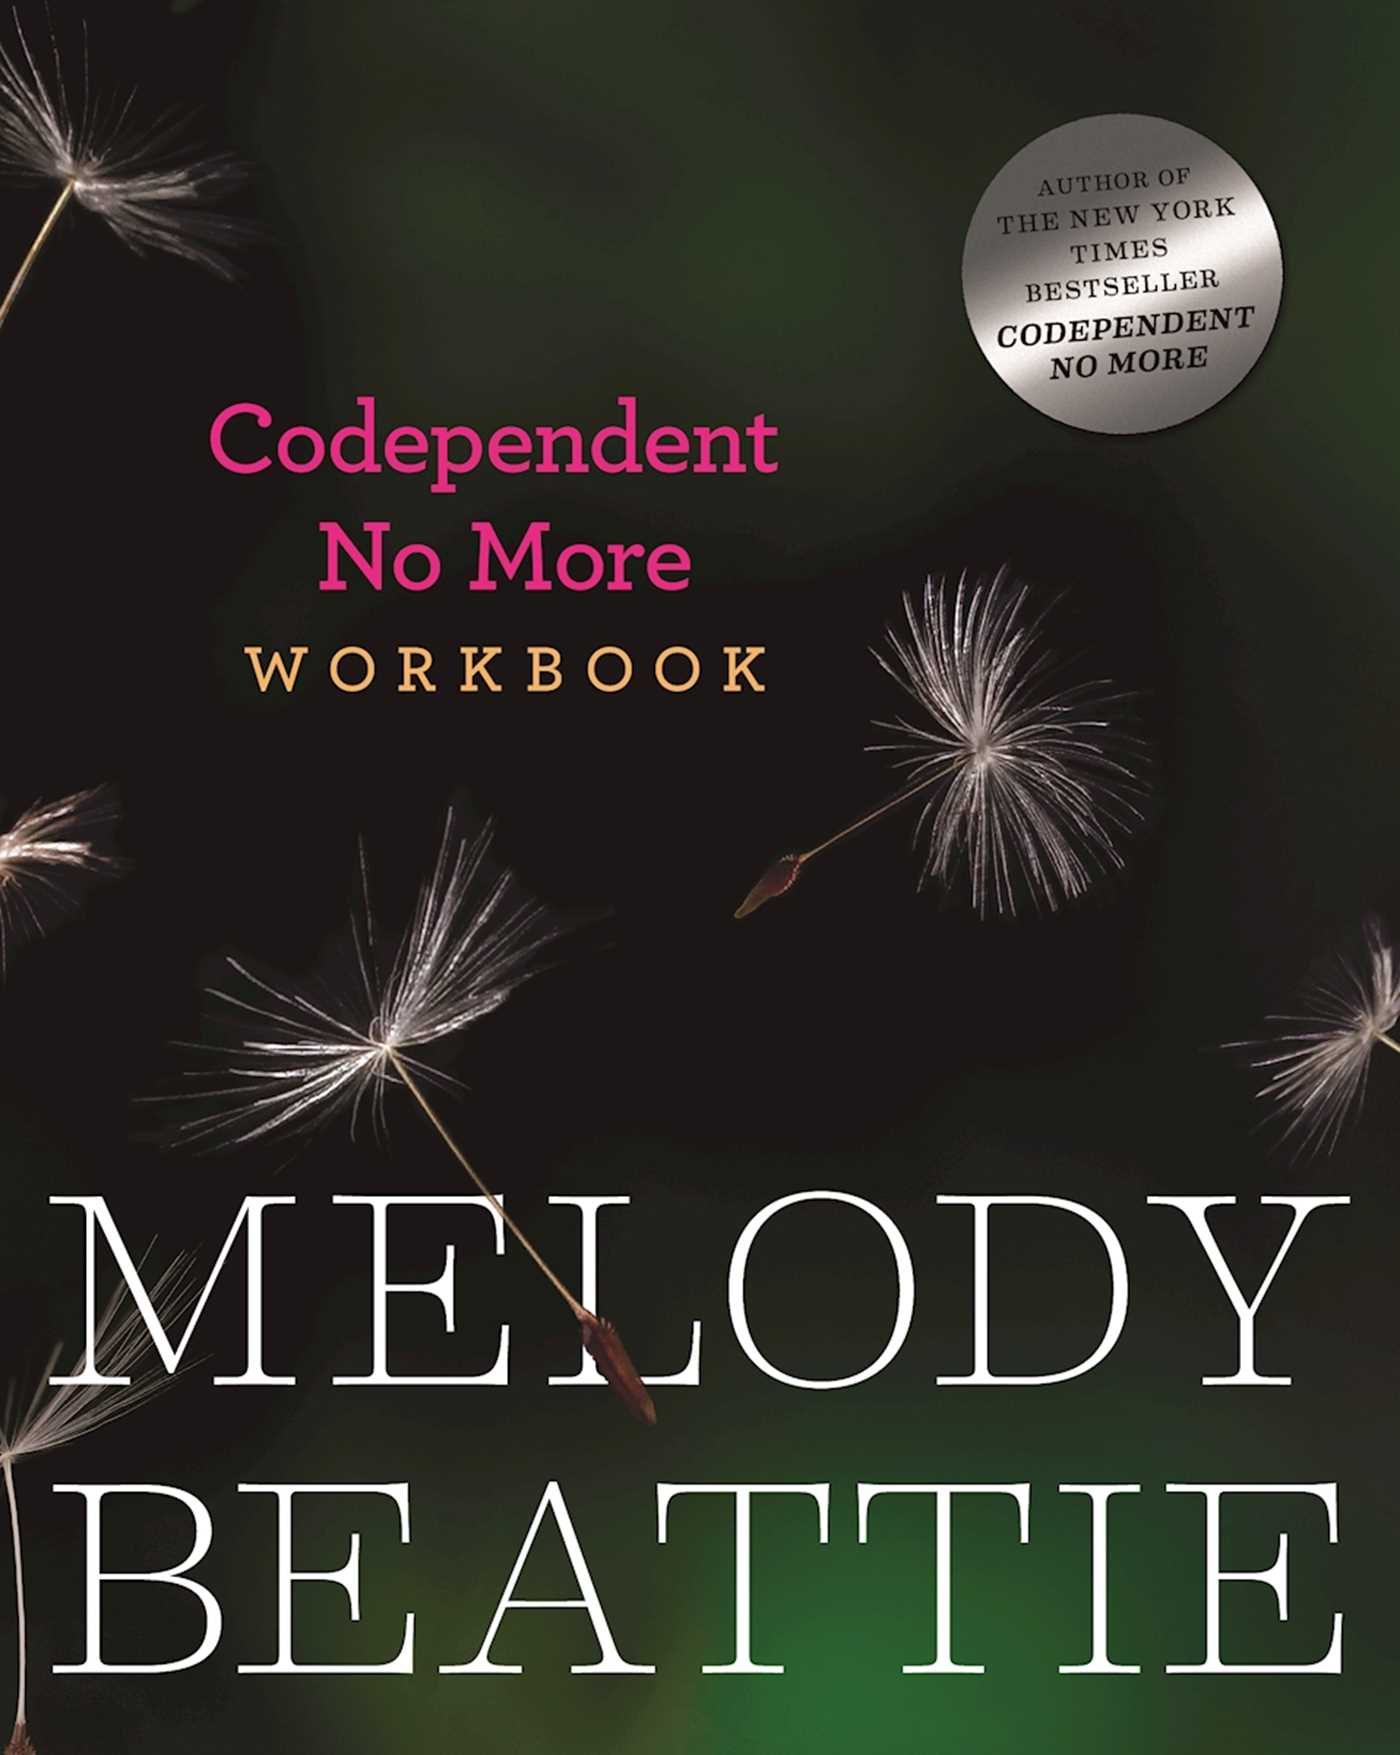 Book Cover Image (jpg): Codependent No More Workbook